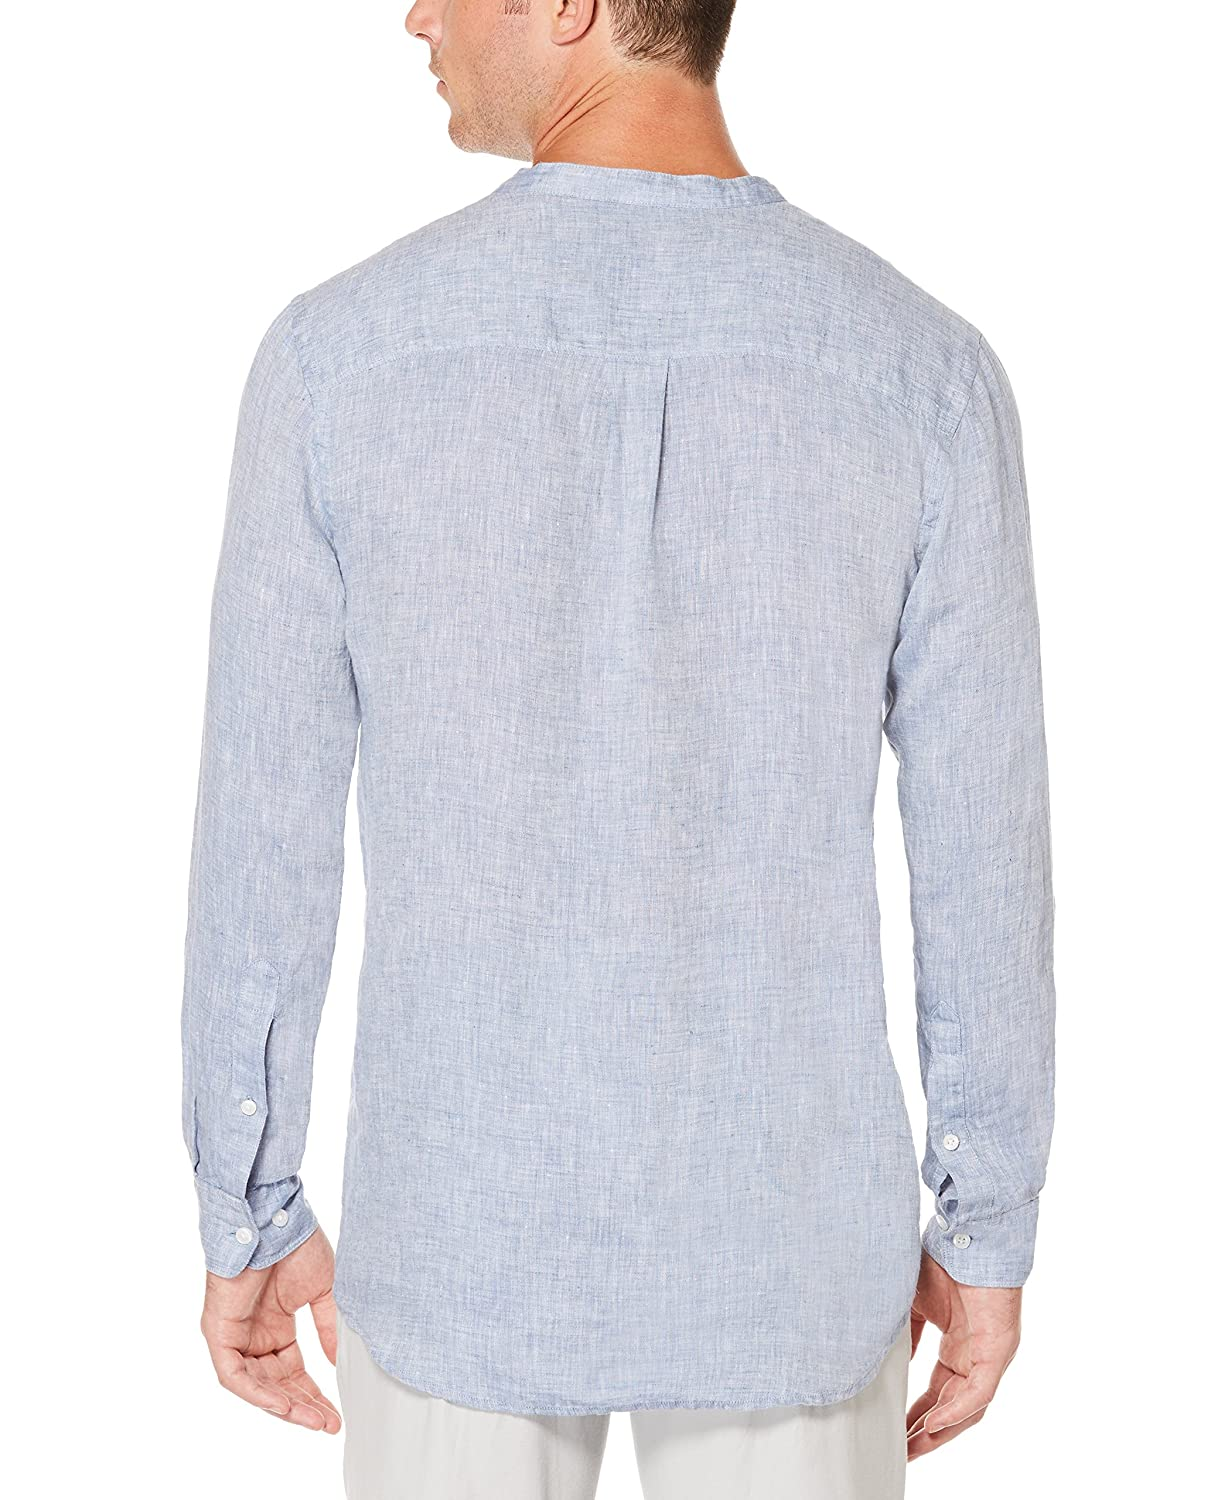 d9f8505c420b Perry Ellis Men's Long-Sleeve Solid Linen Cotton Popover Shirt: Amazon.in:  Clothing & Accessories